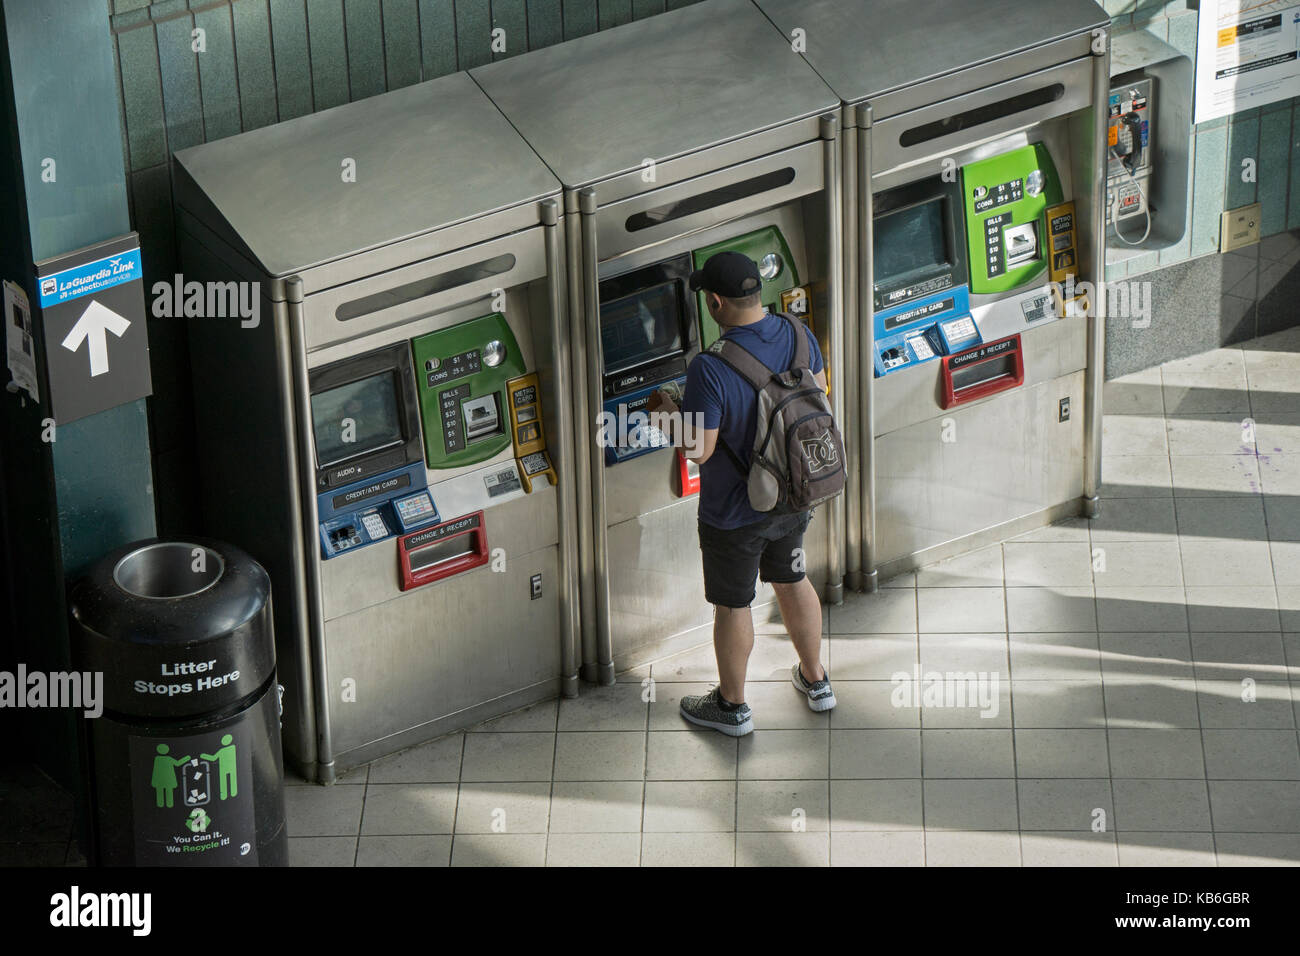 A young man with a backpack purchasing or refilling his Metrocard at the 74th Street Broadway station on the 7 line. - Stock Image